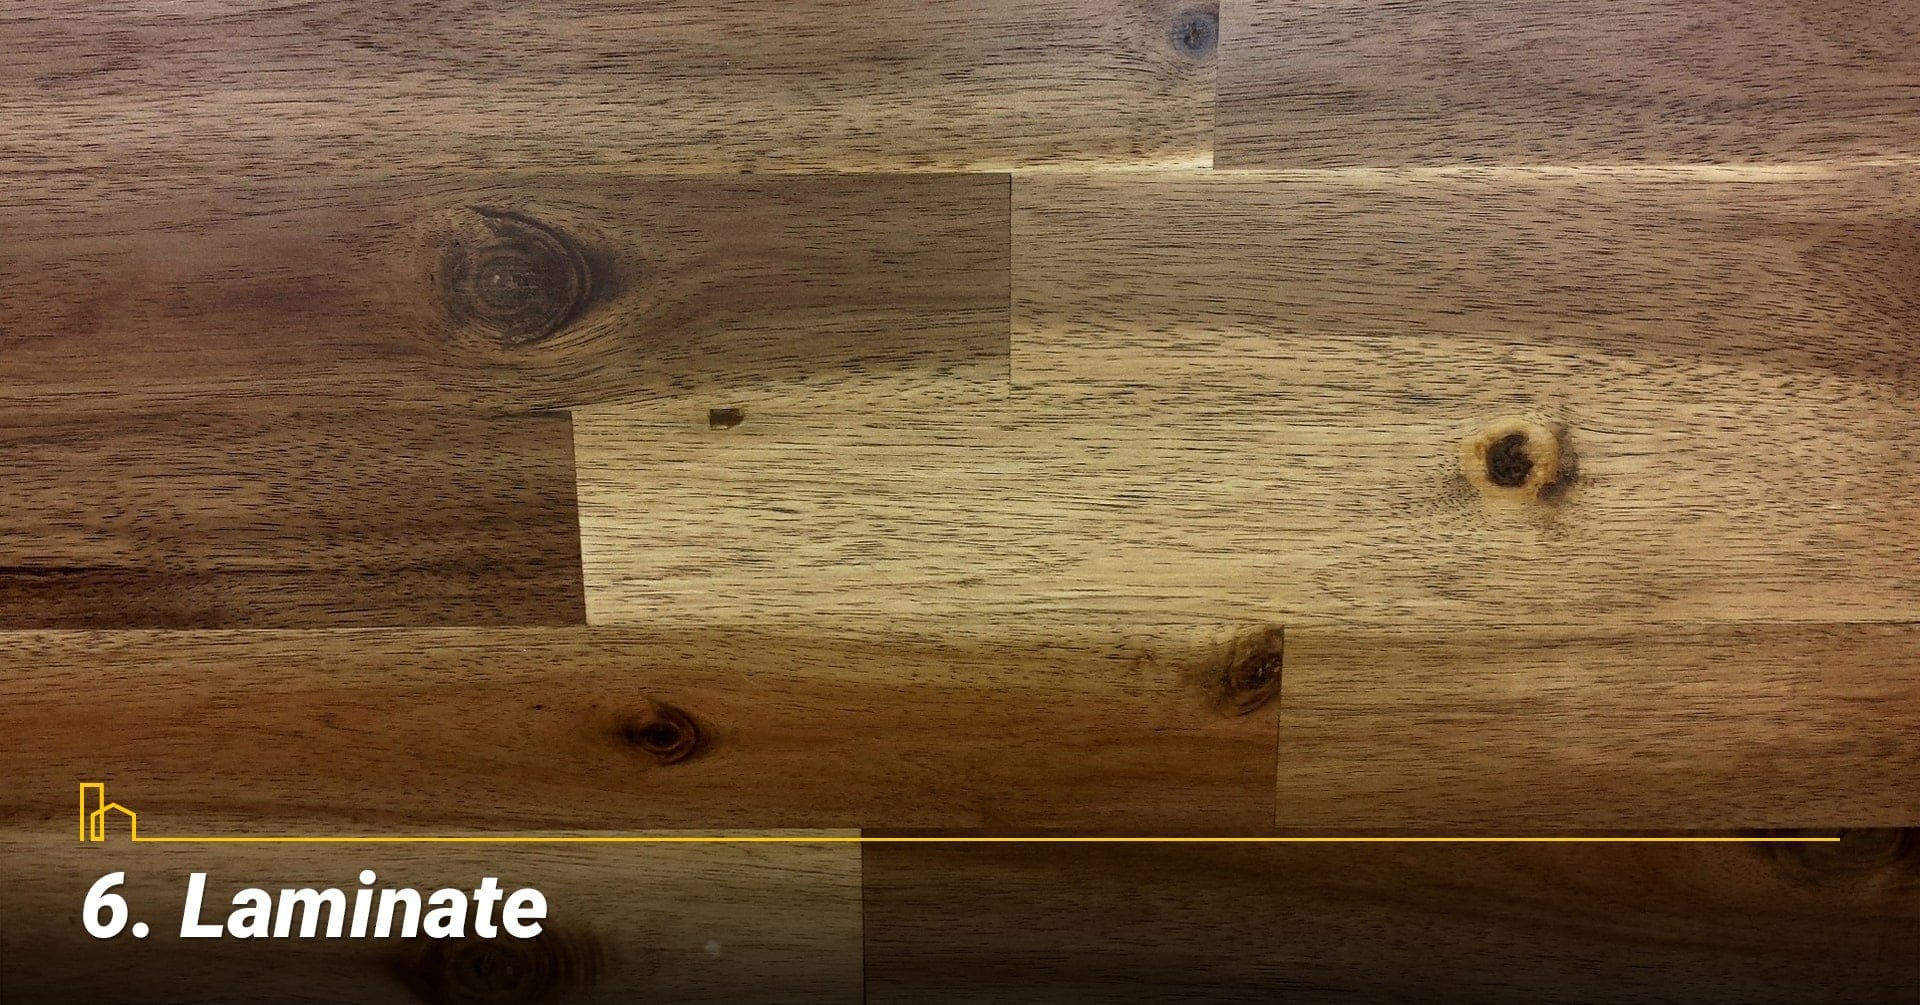 Laminate, cover your floor with laminate